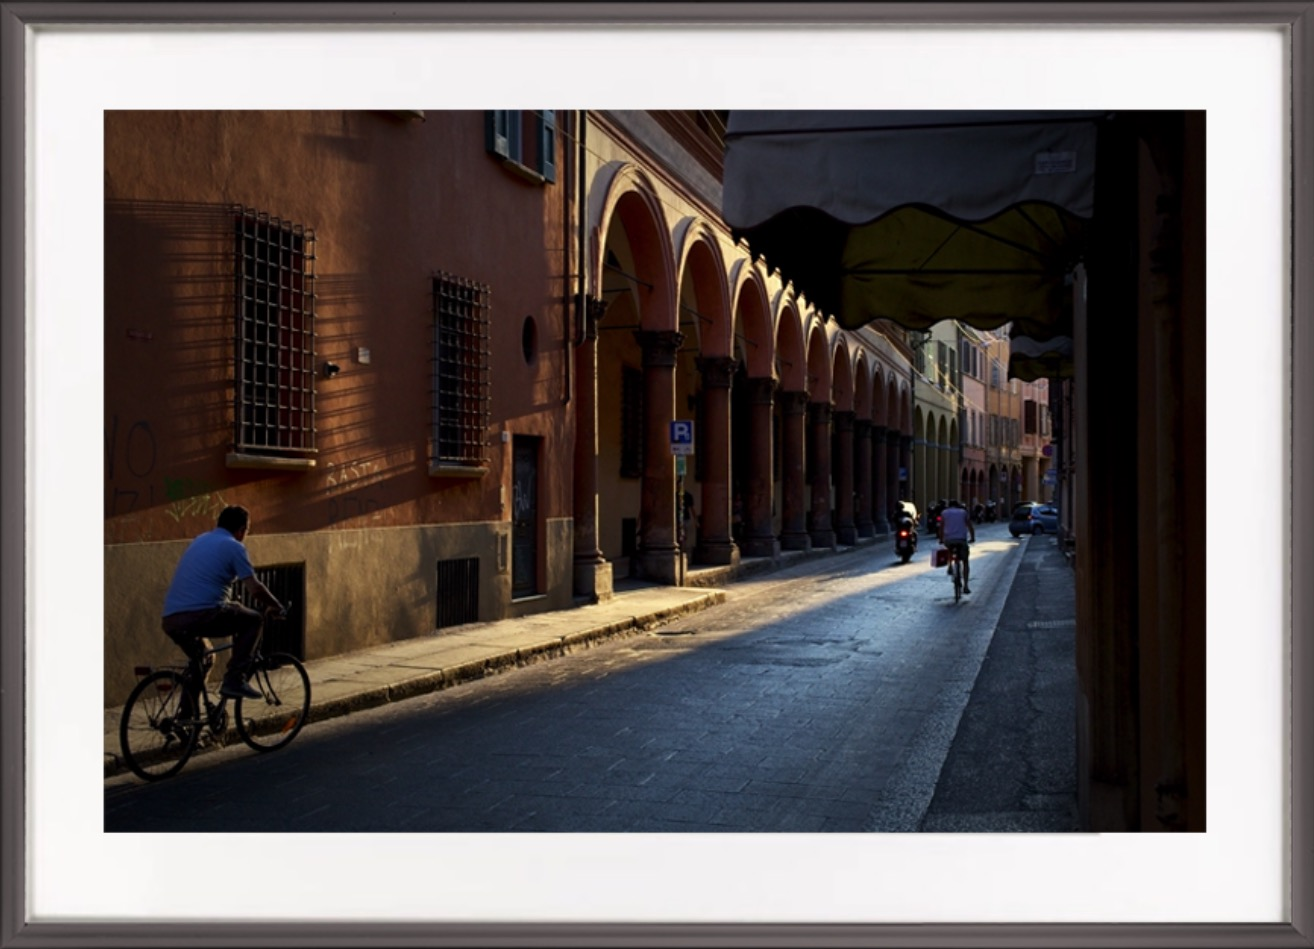 'Memories Captured' - I went to Bologna with my wife and a couple of friends, we loved it. When I saw that Jim had captured the warmth of the place I just had to buy this print. Chris Welsh, Edinburgh